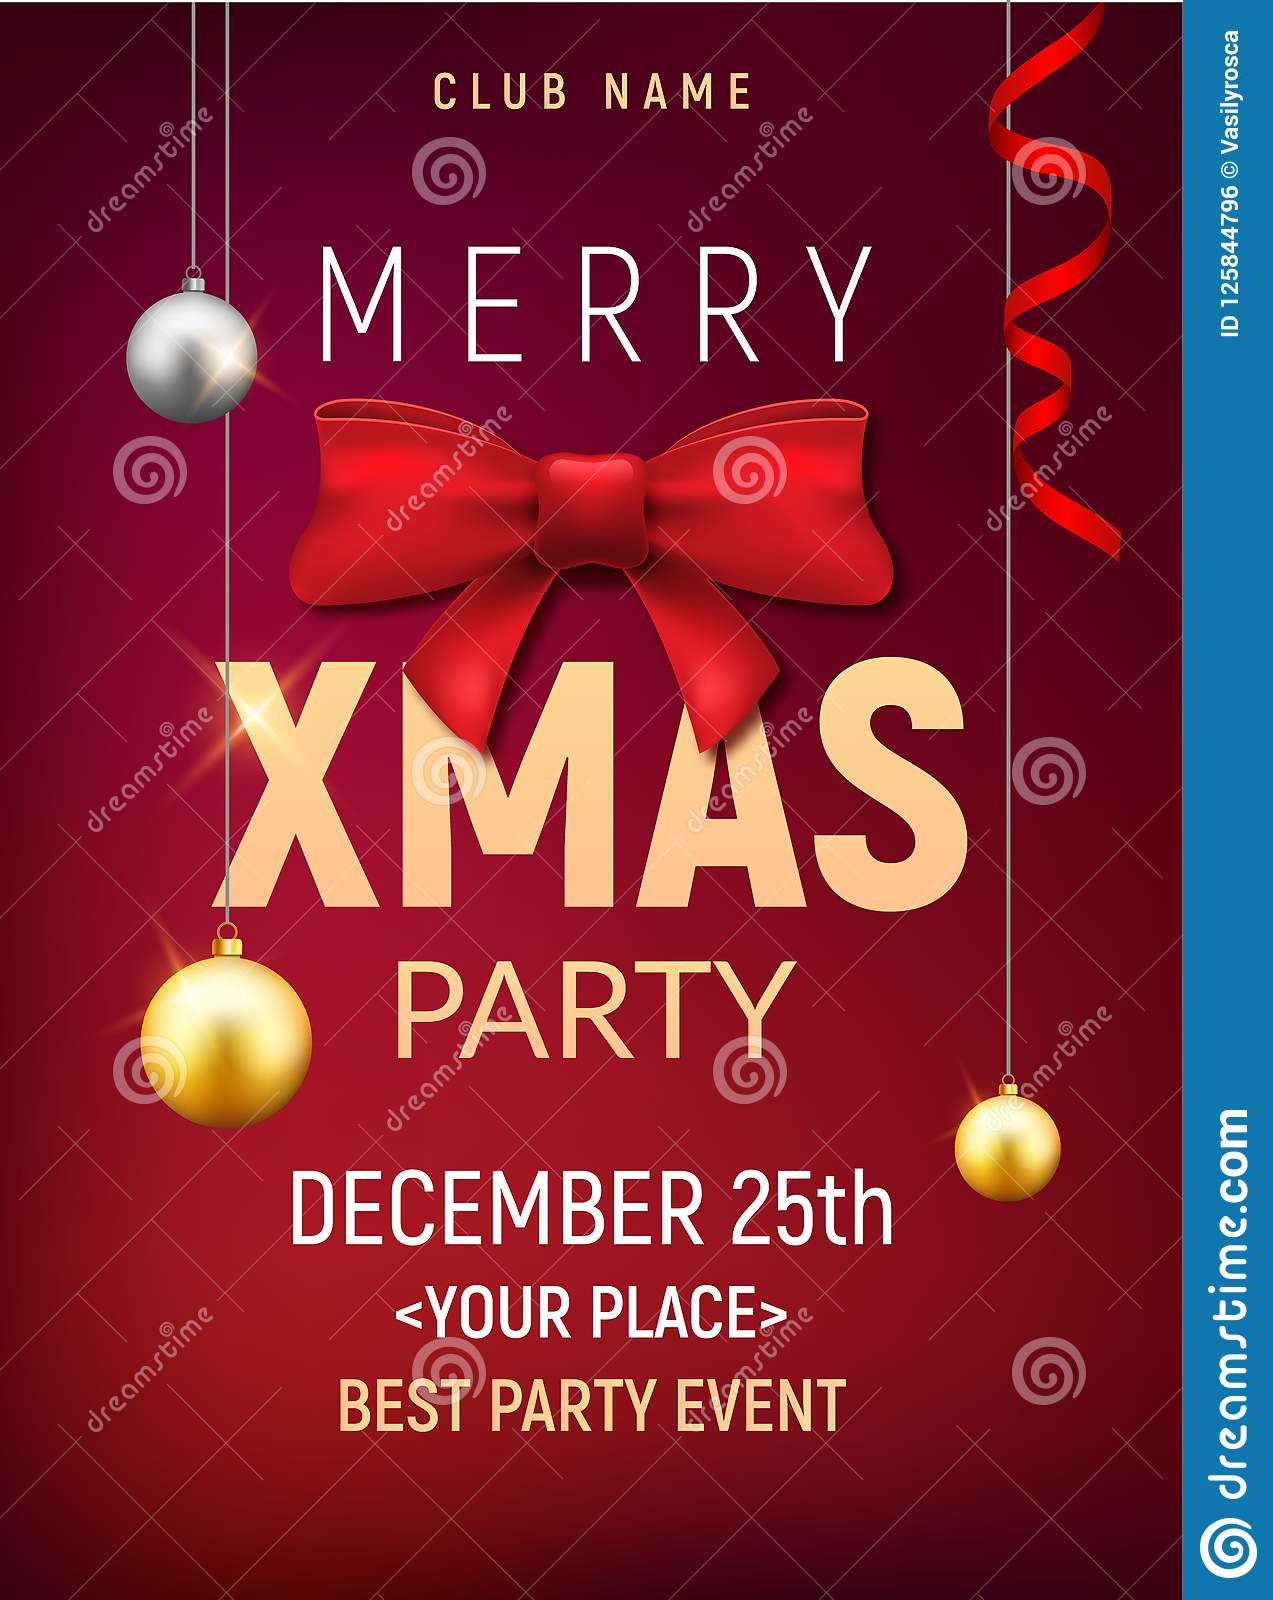 download christmas party poster template christmas gold balls and red bow flyer decoration invitation banner